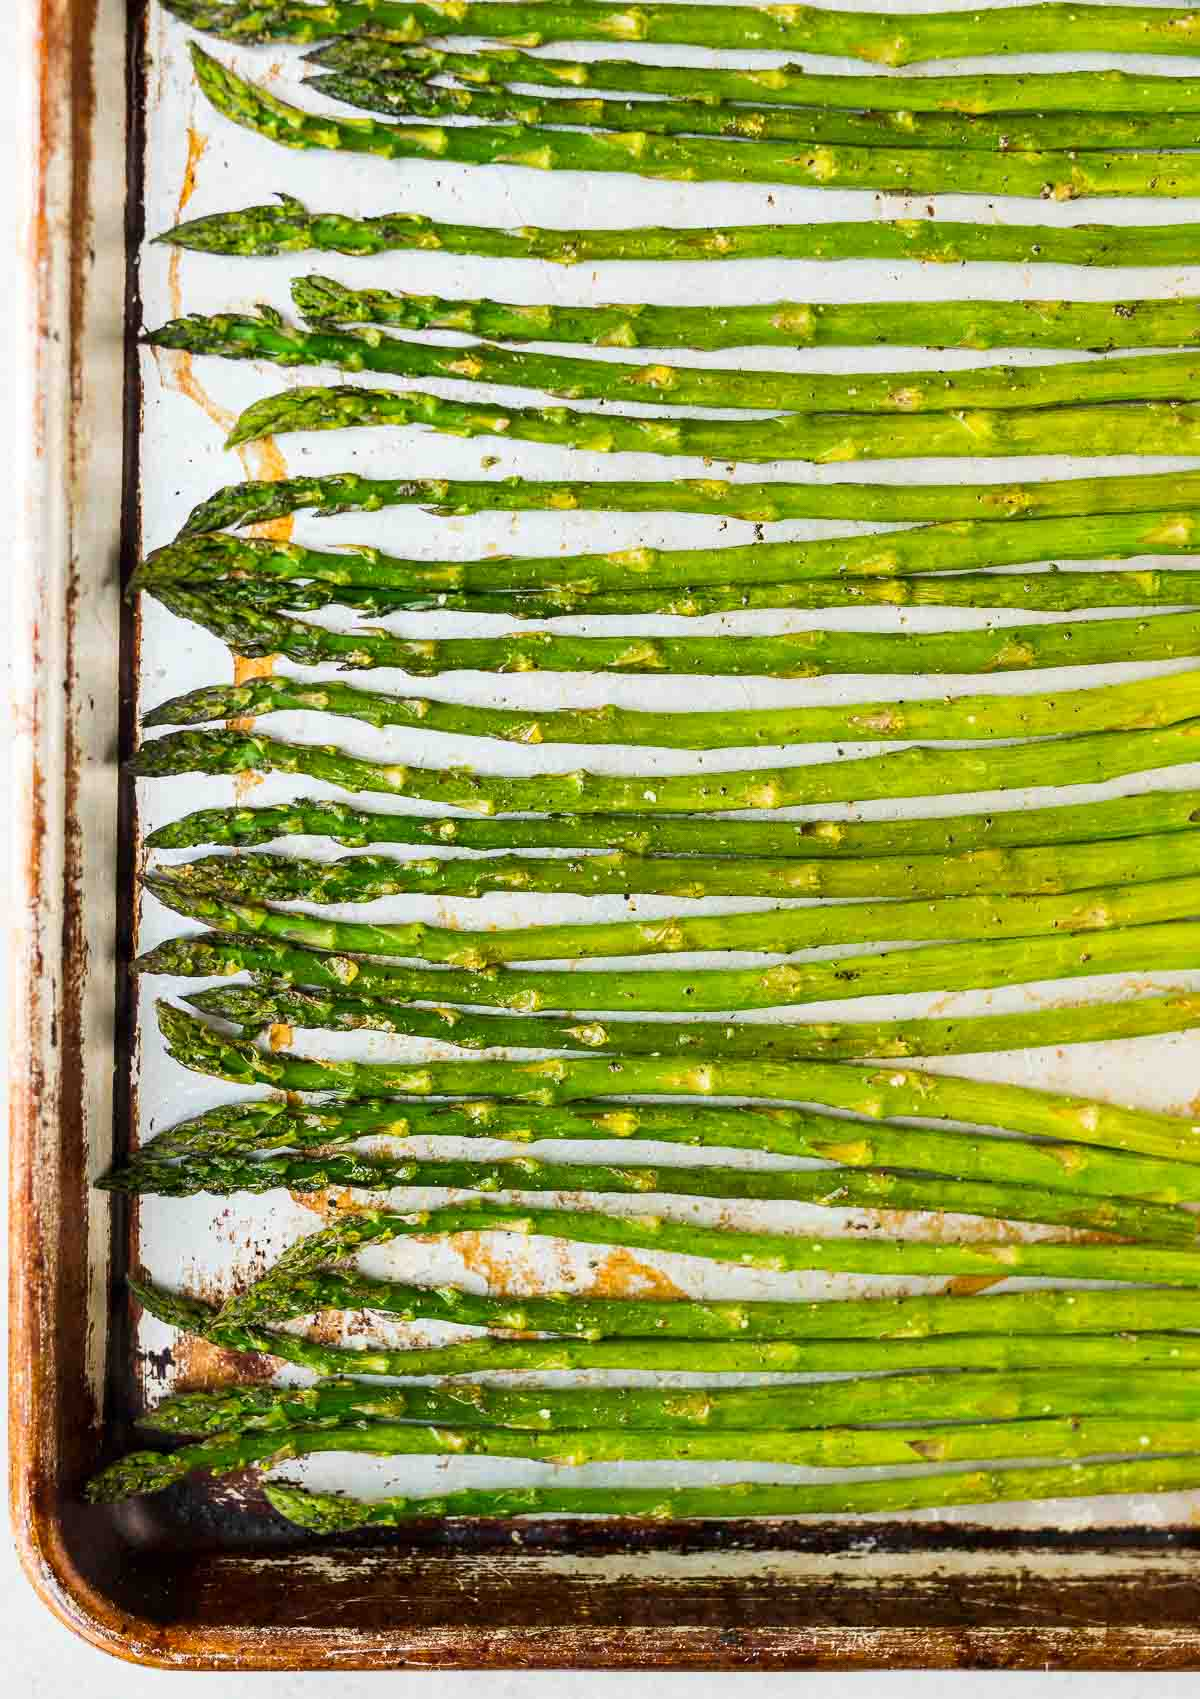 Roasted asparagus spears on a baking sheet